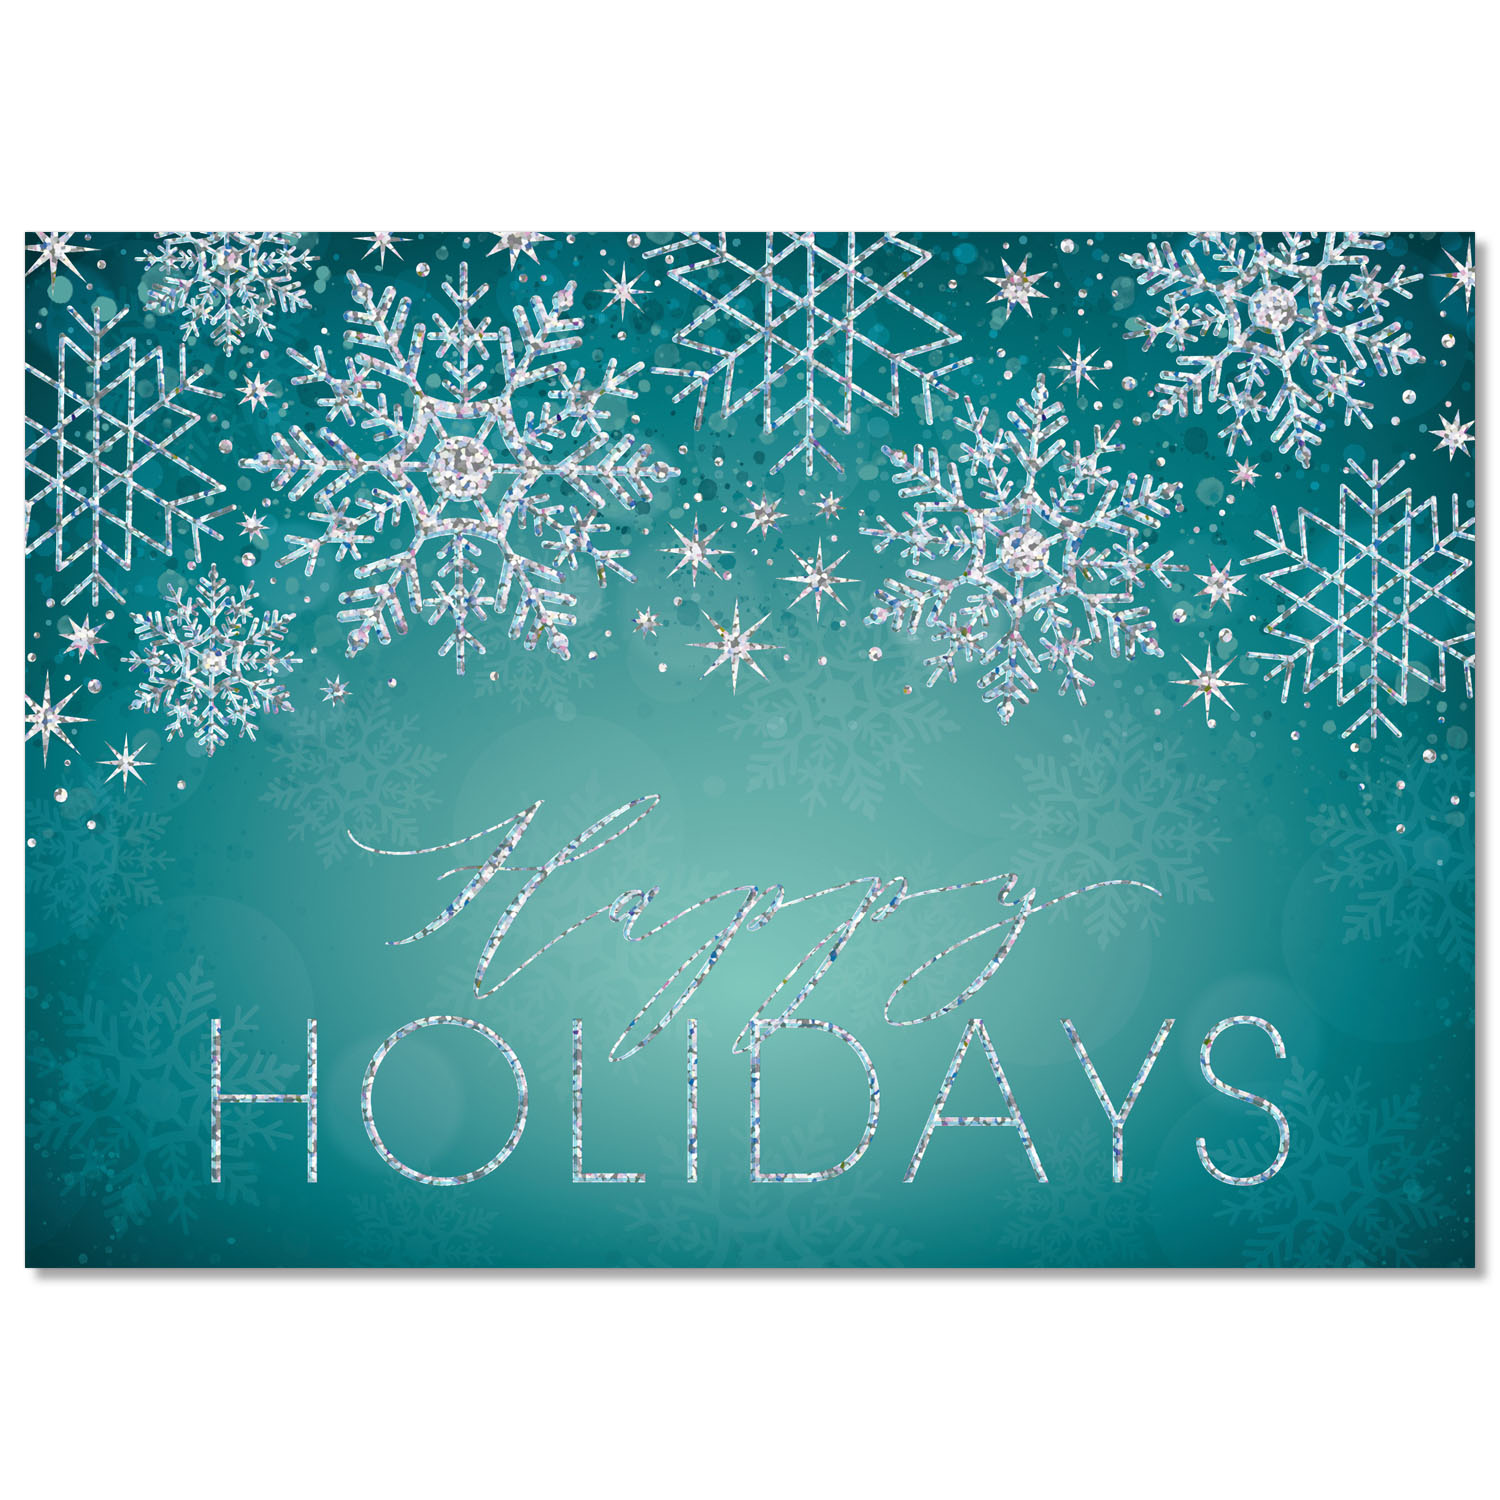 Holographic Snowflakes Holiday Card